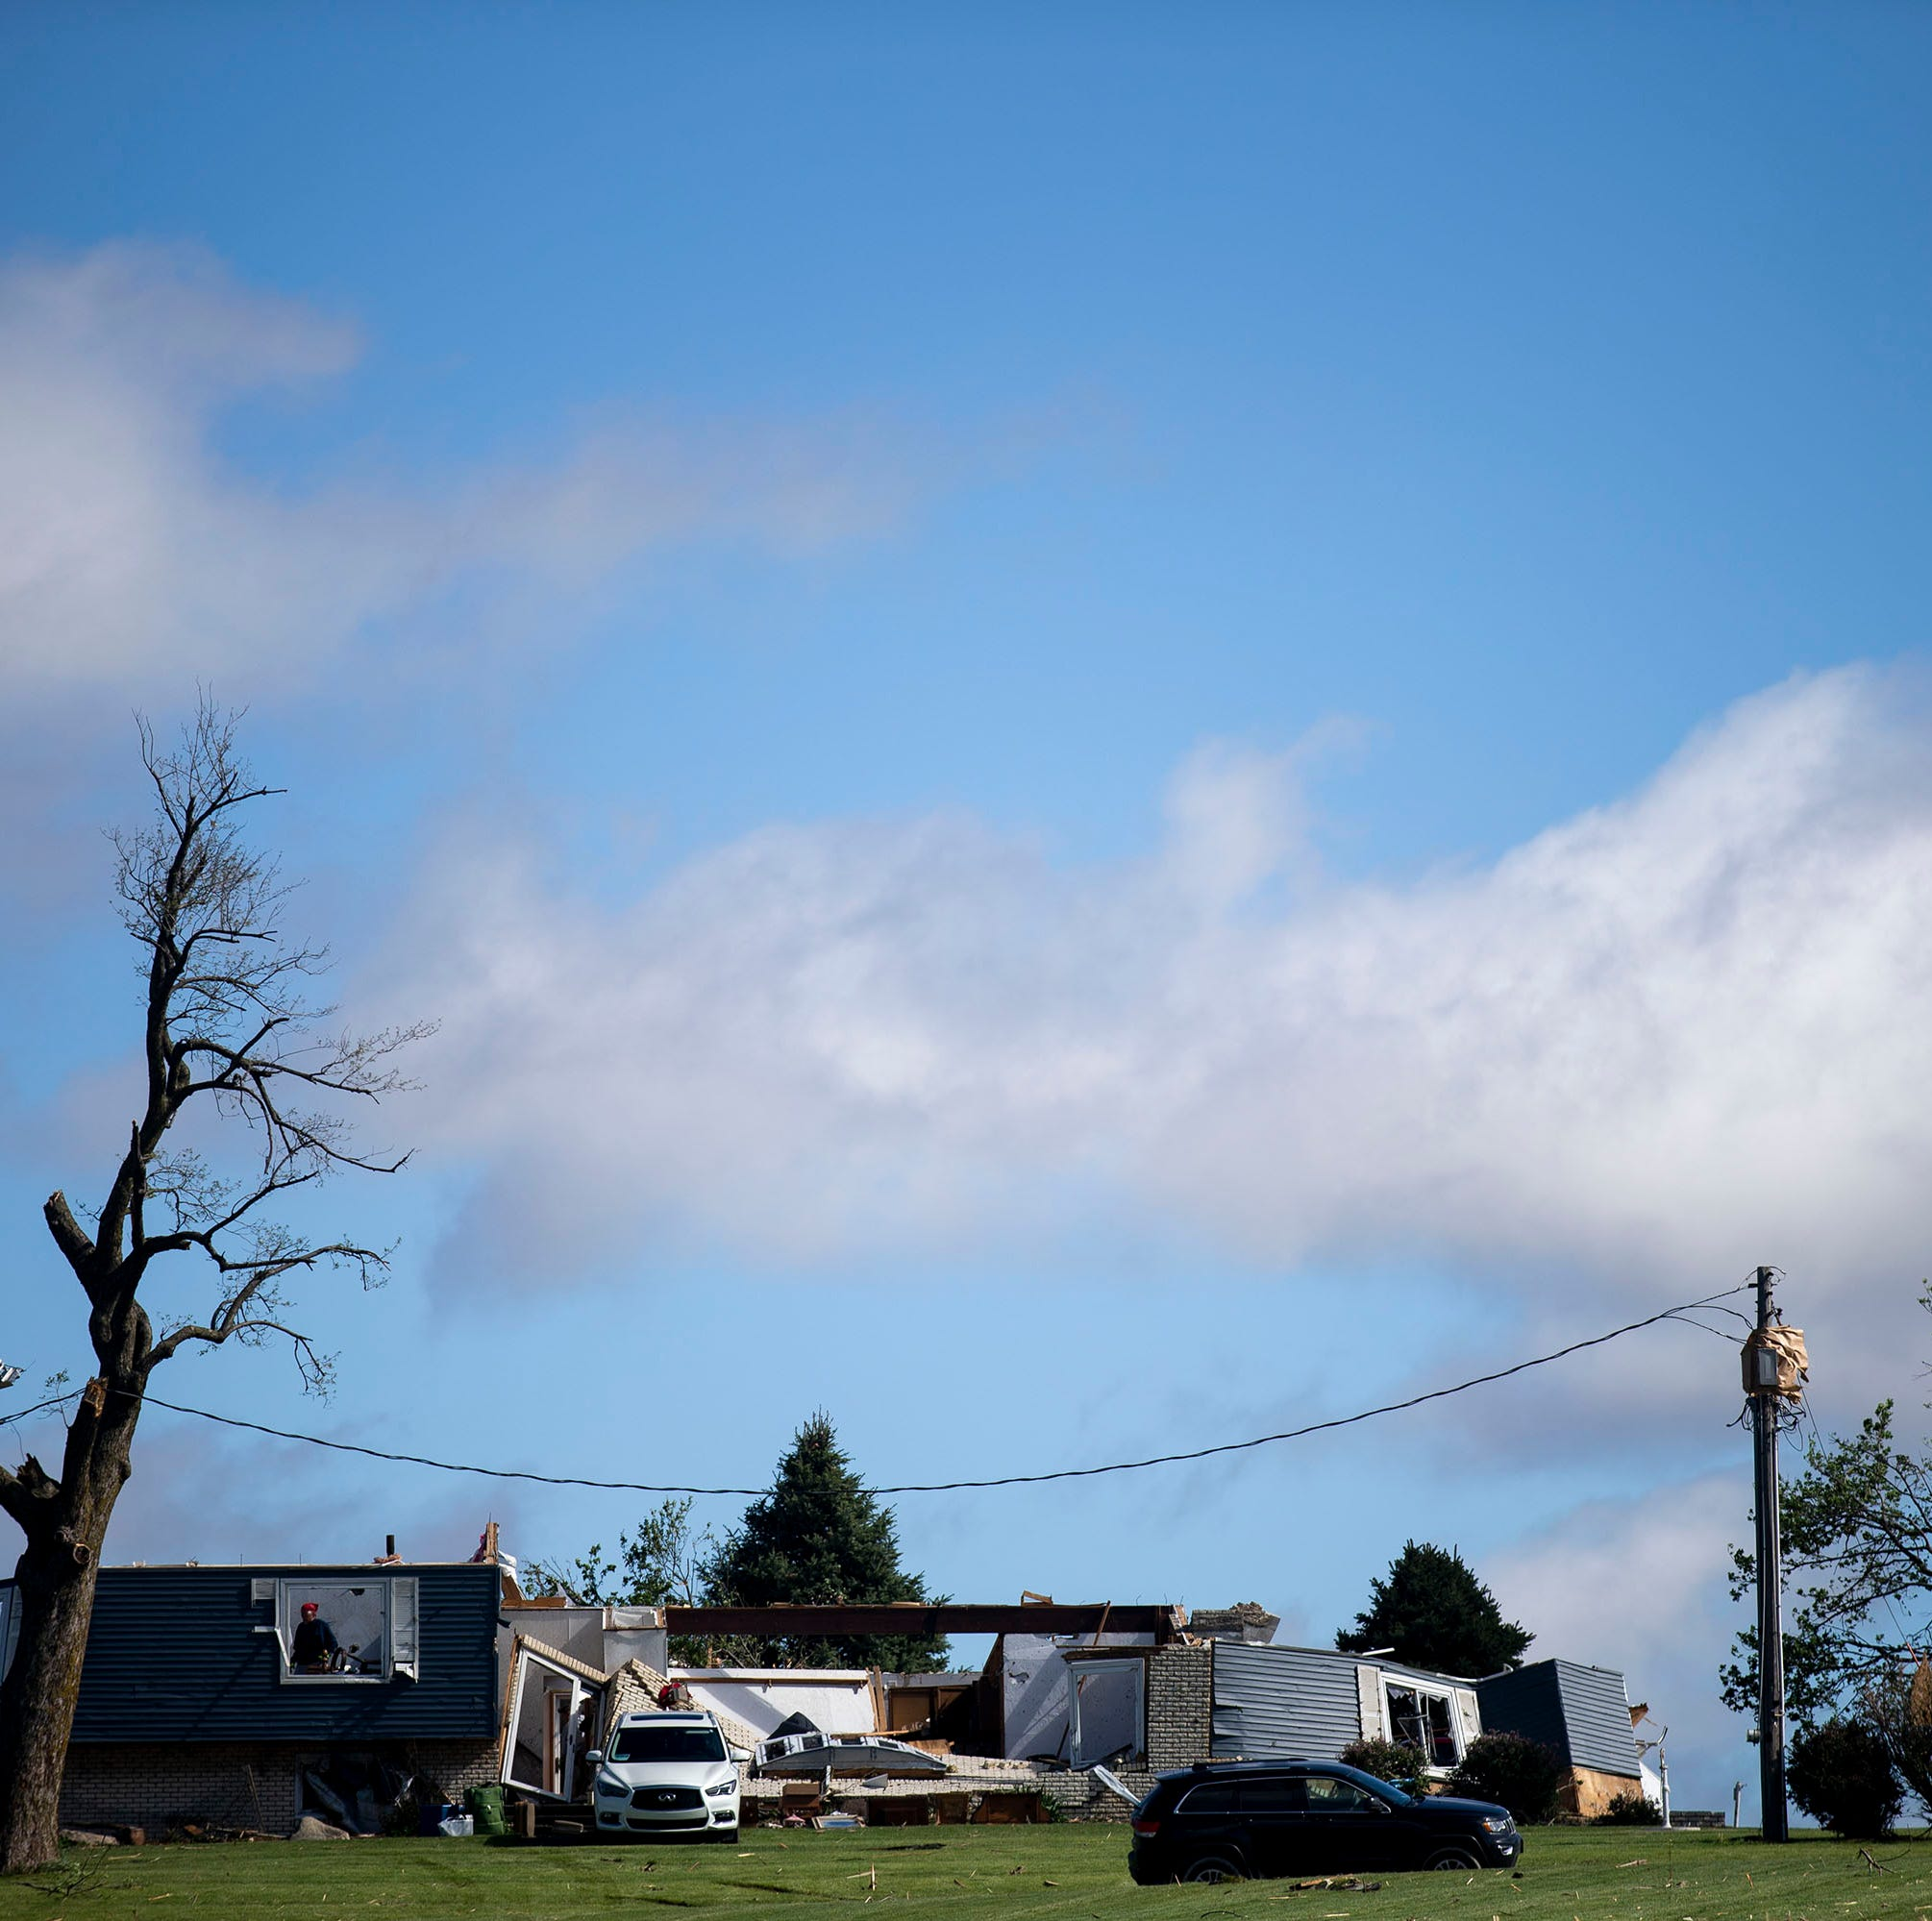 In tornado's wake, Adair residents begin repairing their homes and lives